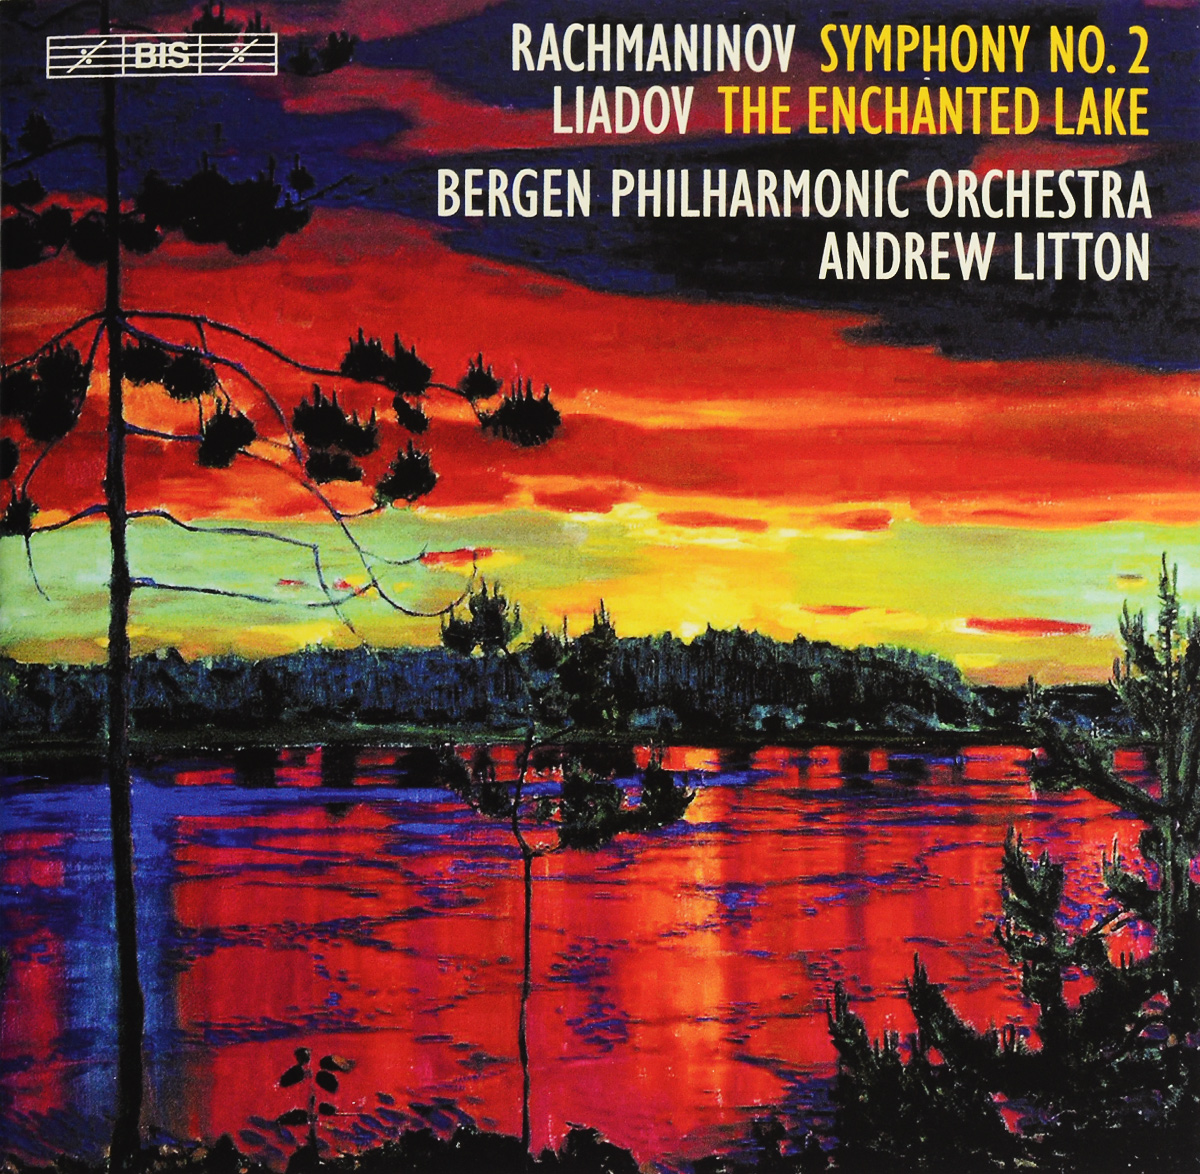 Bergen Philharmonic Orchestra,Эндрю Лайттон Bergen Philharmonic Orchestra, Andrew Litton. Rachmaninov, Liadov. Symphony No. 2. The Enchanted Lake (SACD)